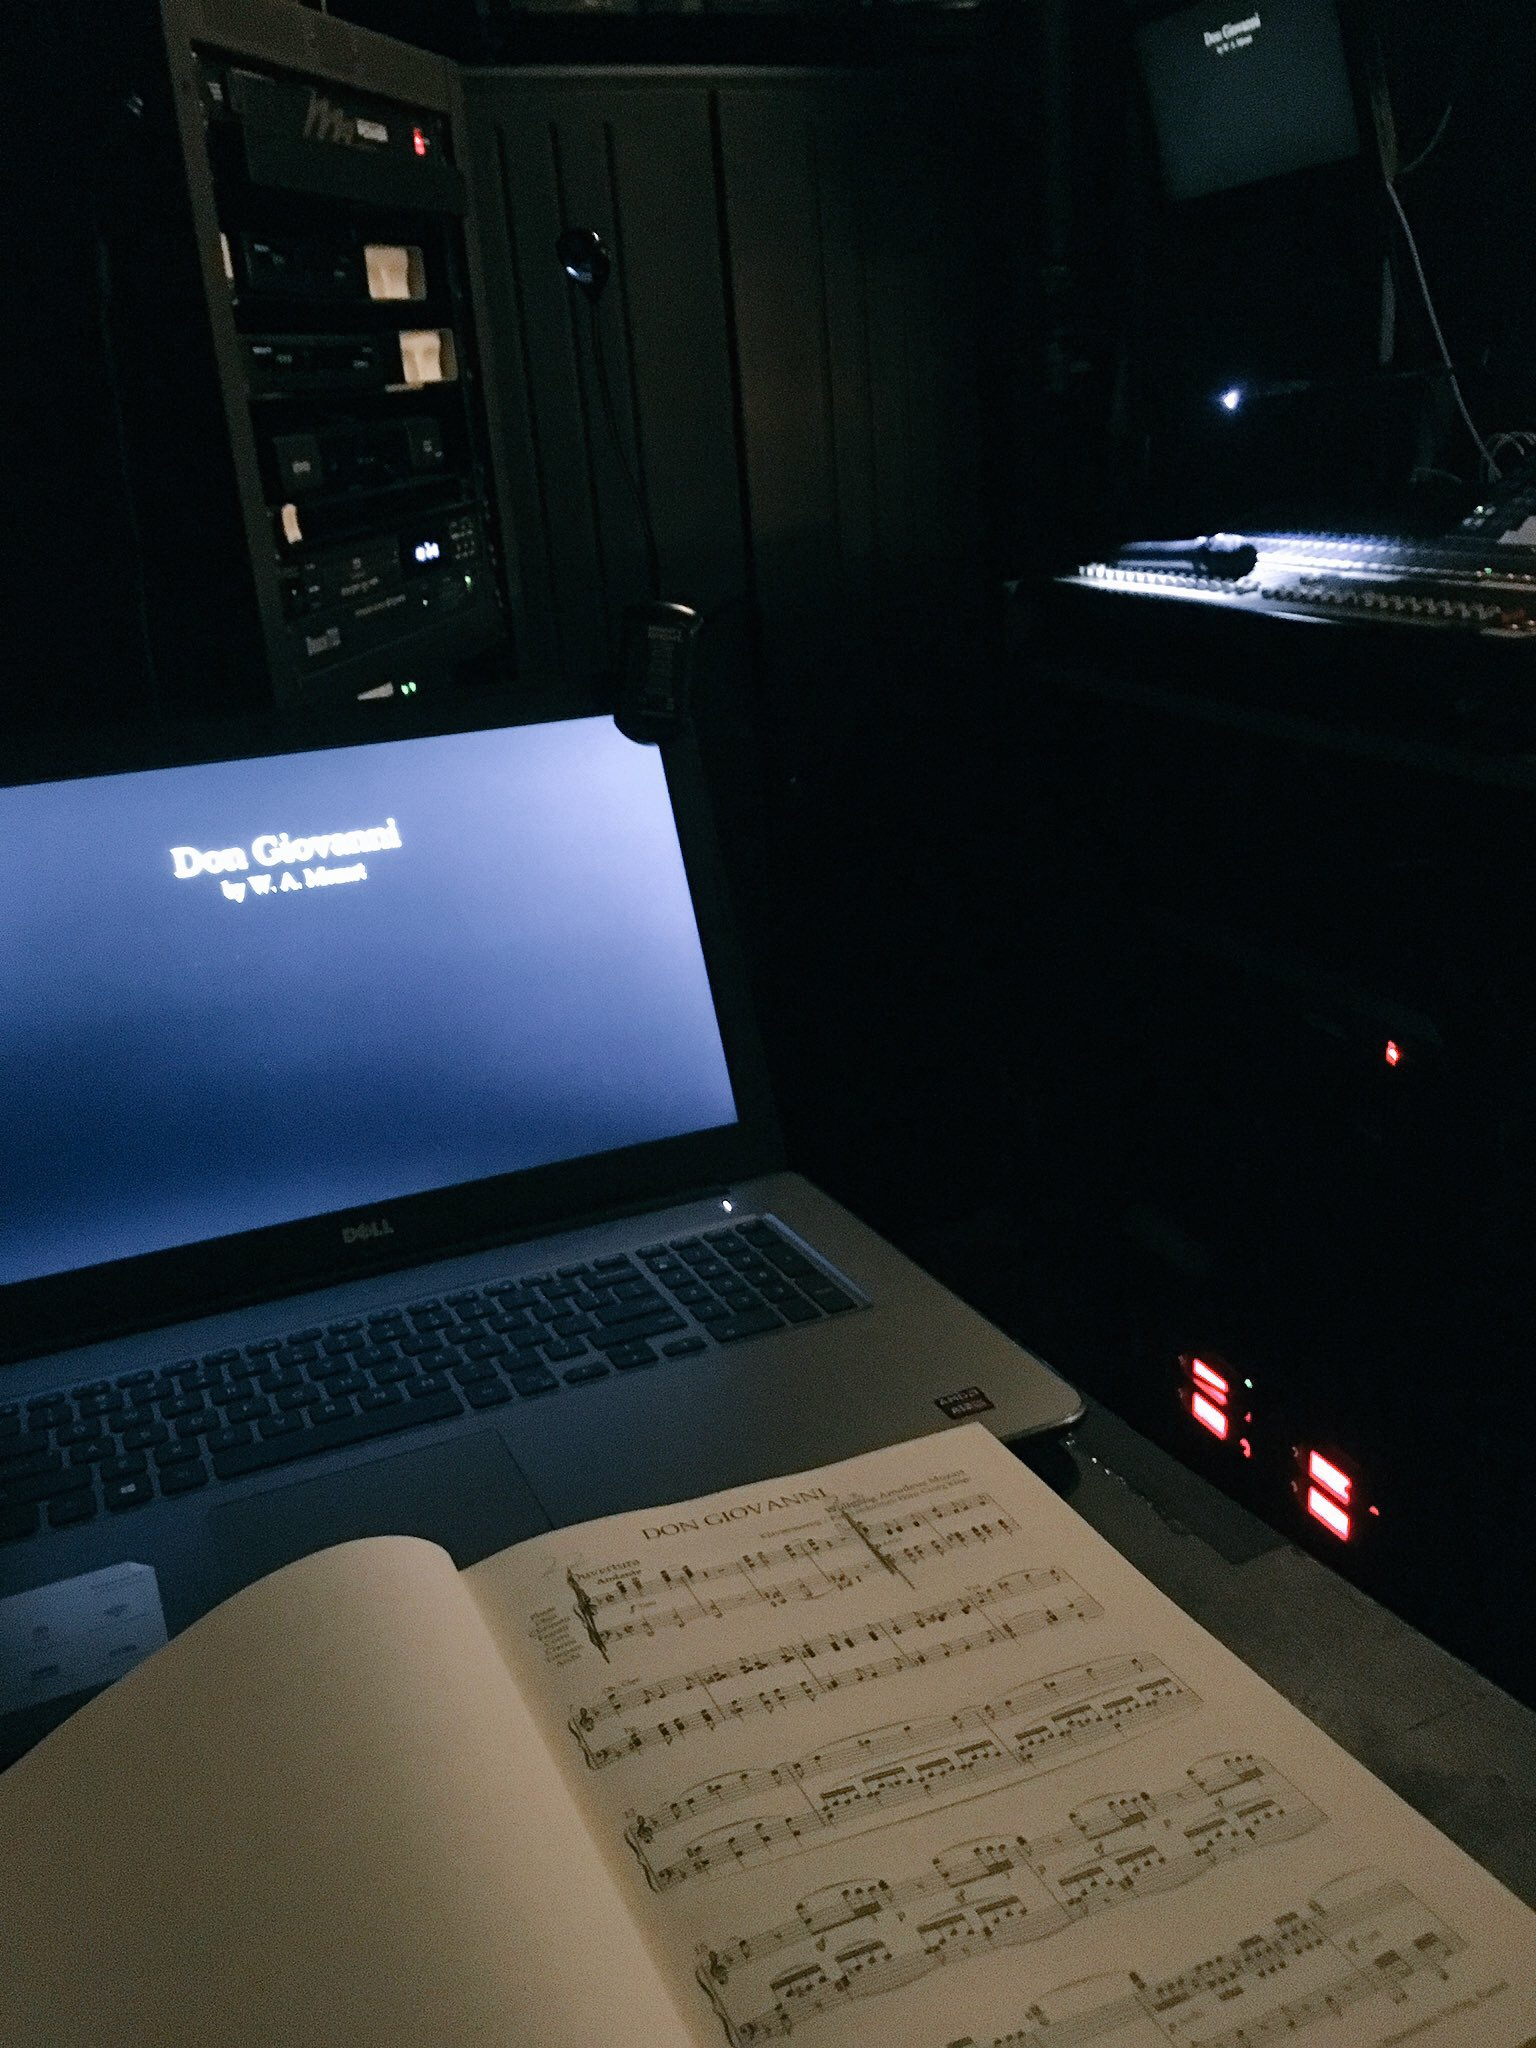 Saadya lays out the music for Don Giovanni in front of his open macbook laptop, ready to transcribe the lyrics